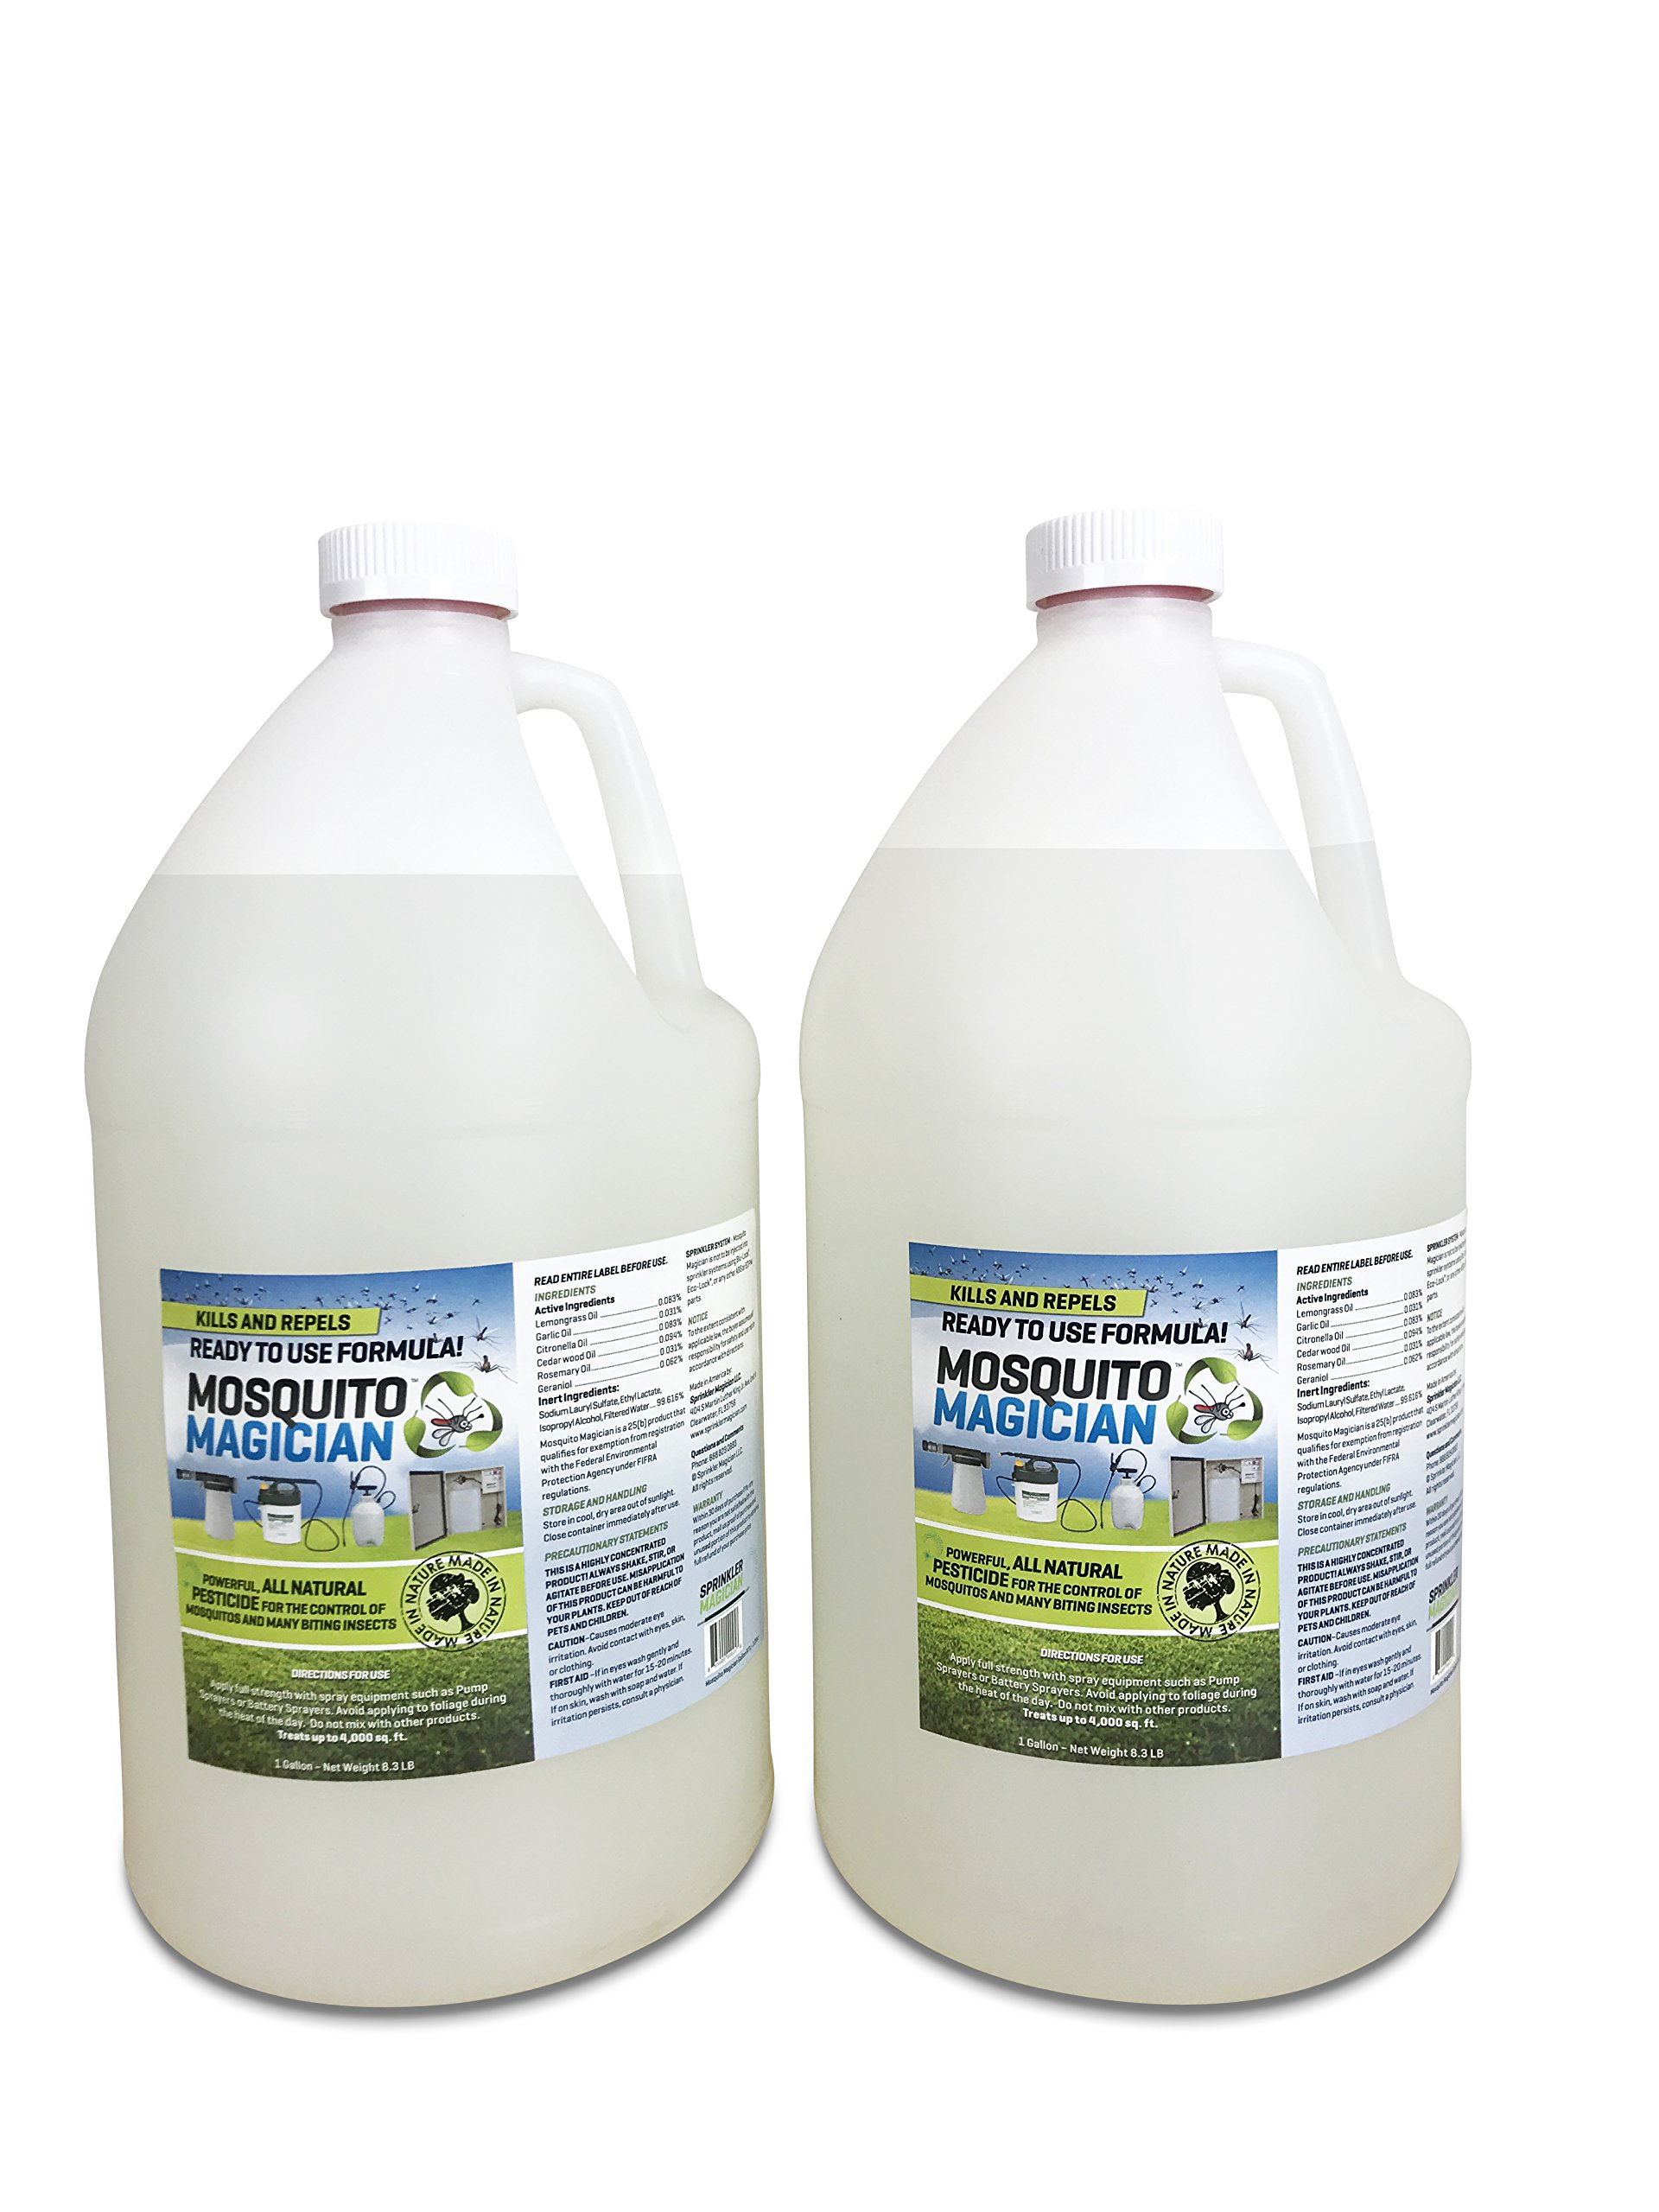 2 Gallons of Mosquito Magician Ready to USE Spray - Natural Mosquito and Insect Repellent for Outdoor Pest Control - Use in Any Sprayer by Mosquito Magician